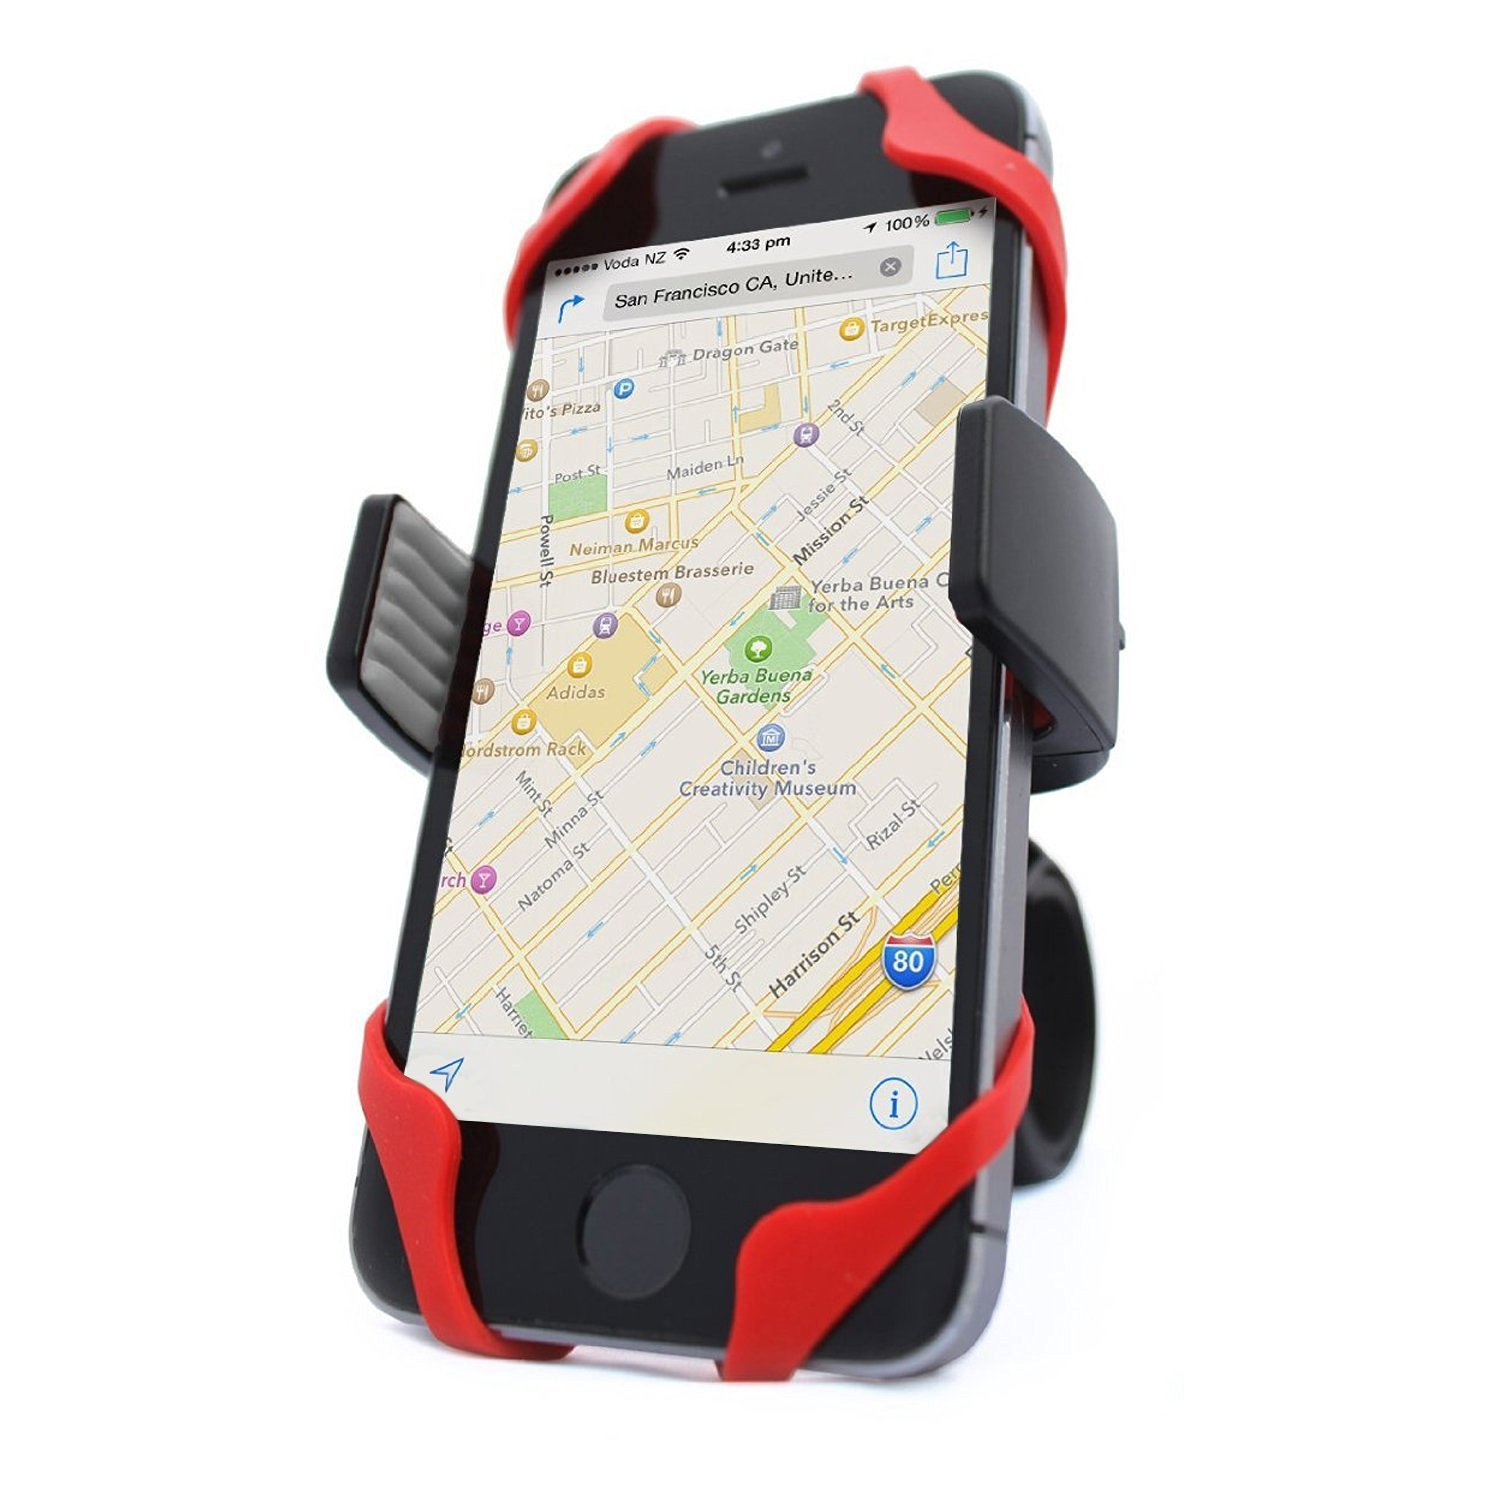 Vibrelli Bike Phone Mount - Fits Any Smart Phone: iPhone Xs, Max, XR, X, 8, 8 Plus, 7, 7 Plus, 6, 6 Plus and Android Devices